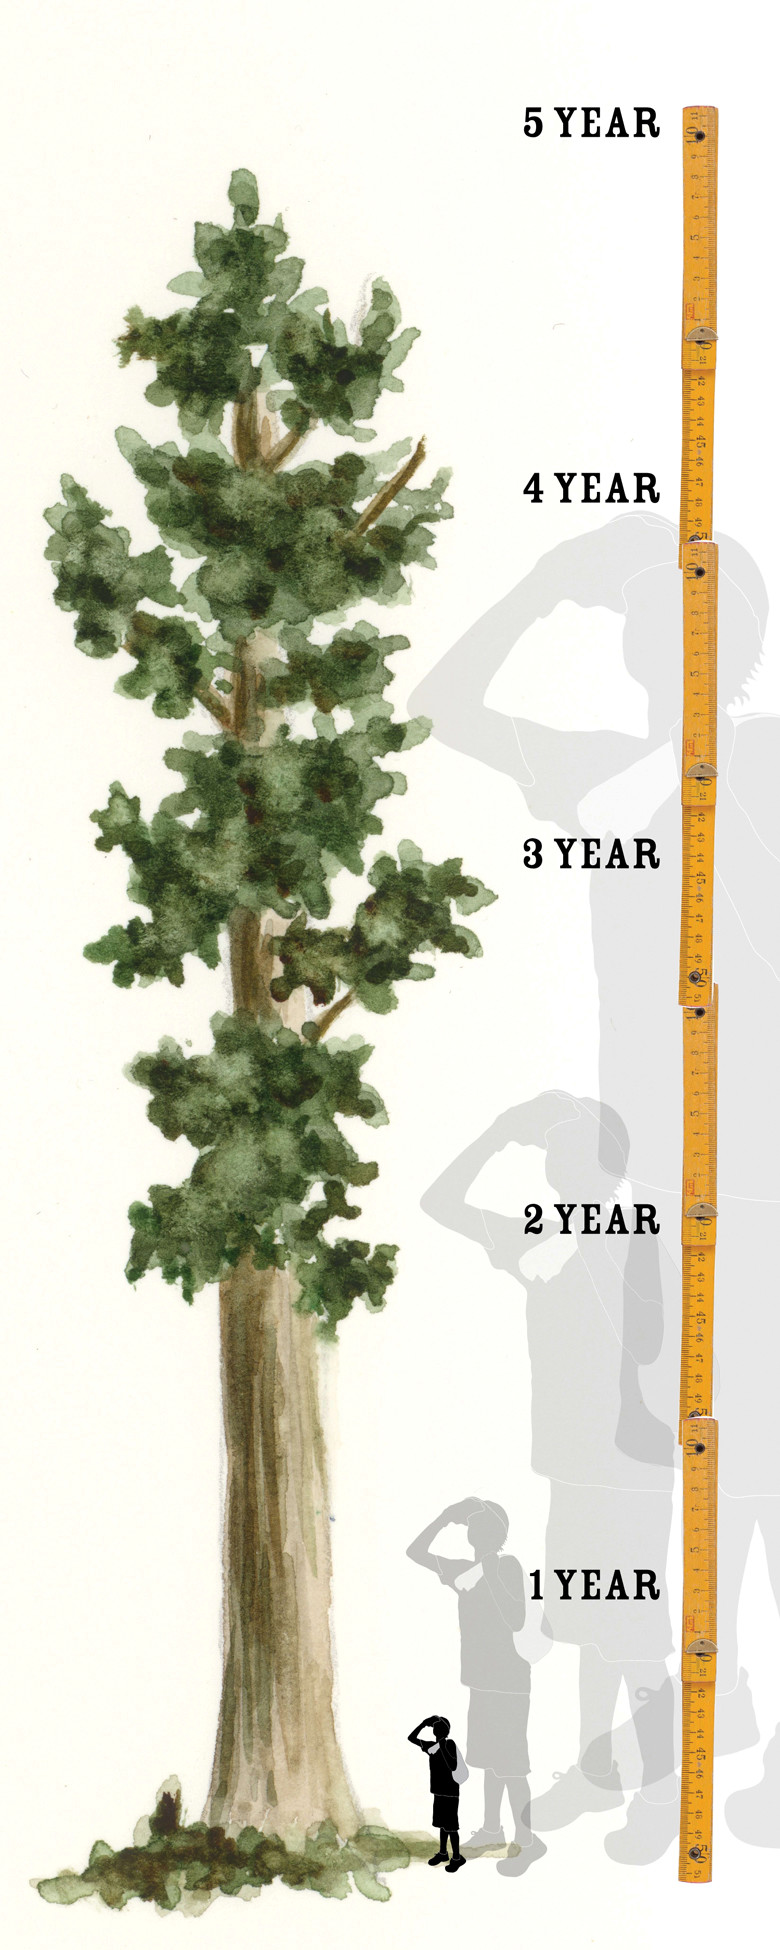 Grow your own giant sequoia 9781604331431.in01